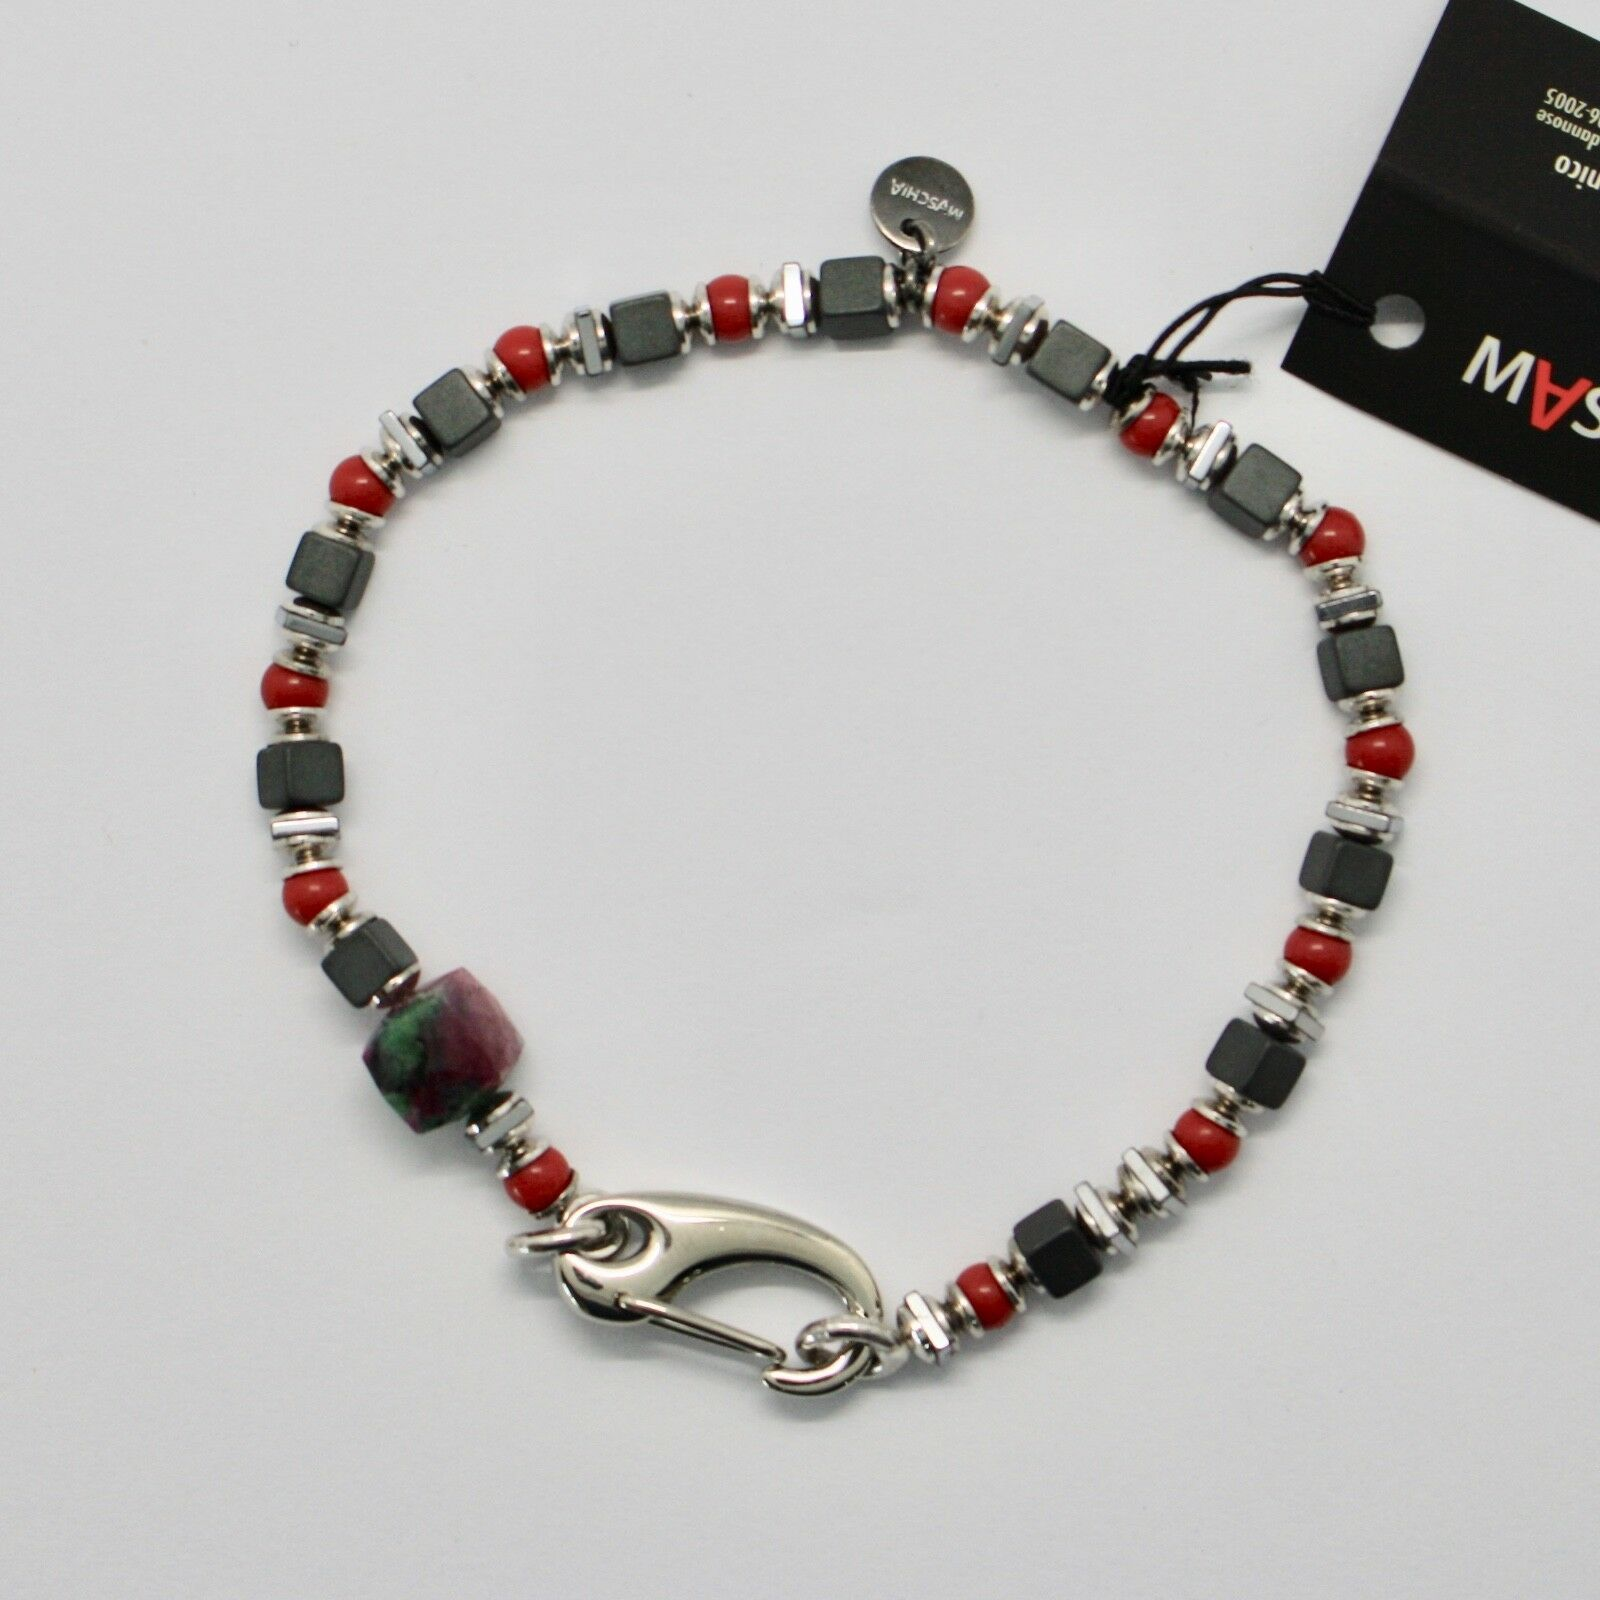 Silver 925 Bracelet Ruby Zoisite Coral Bpan-13 Made in Italy by Maschia image 3